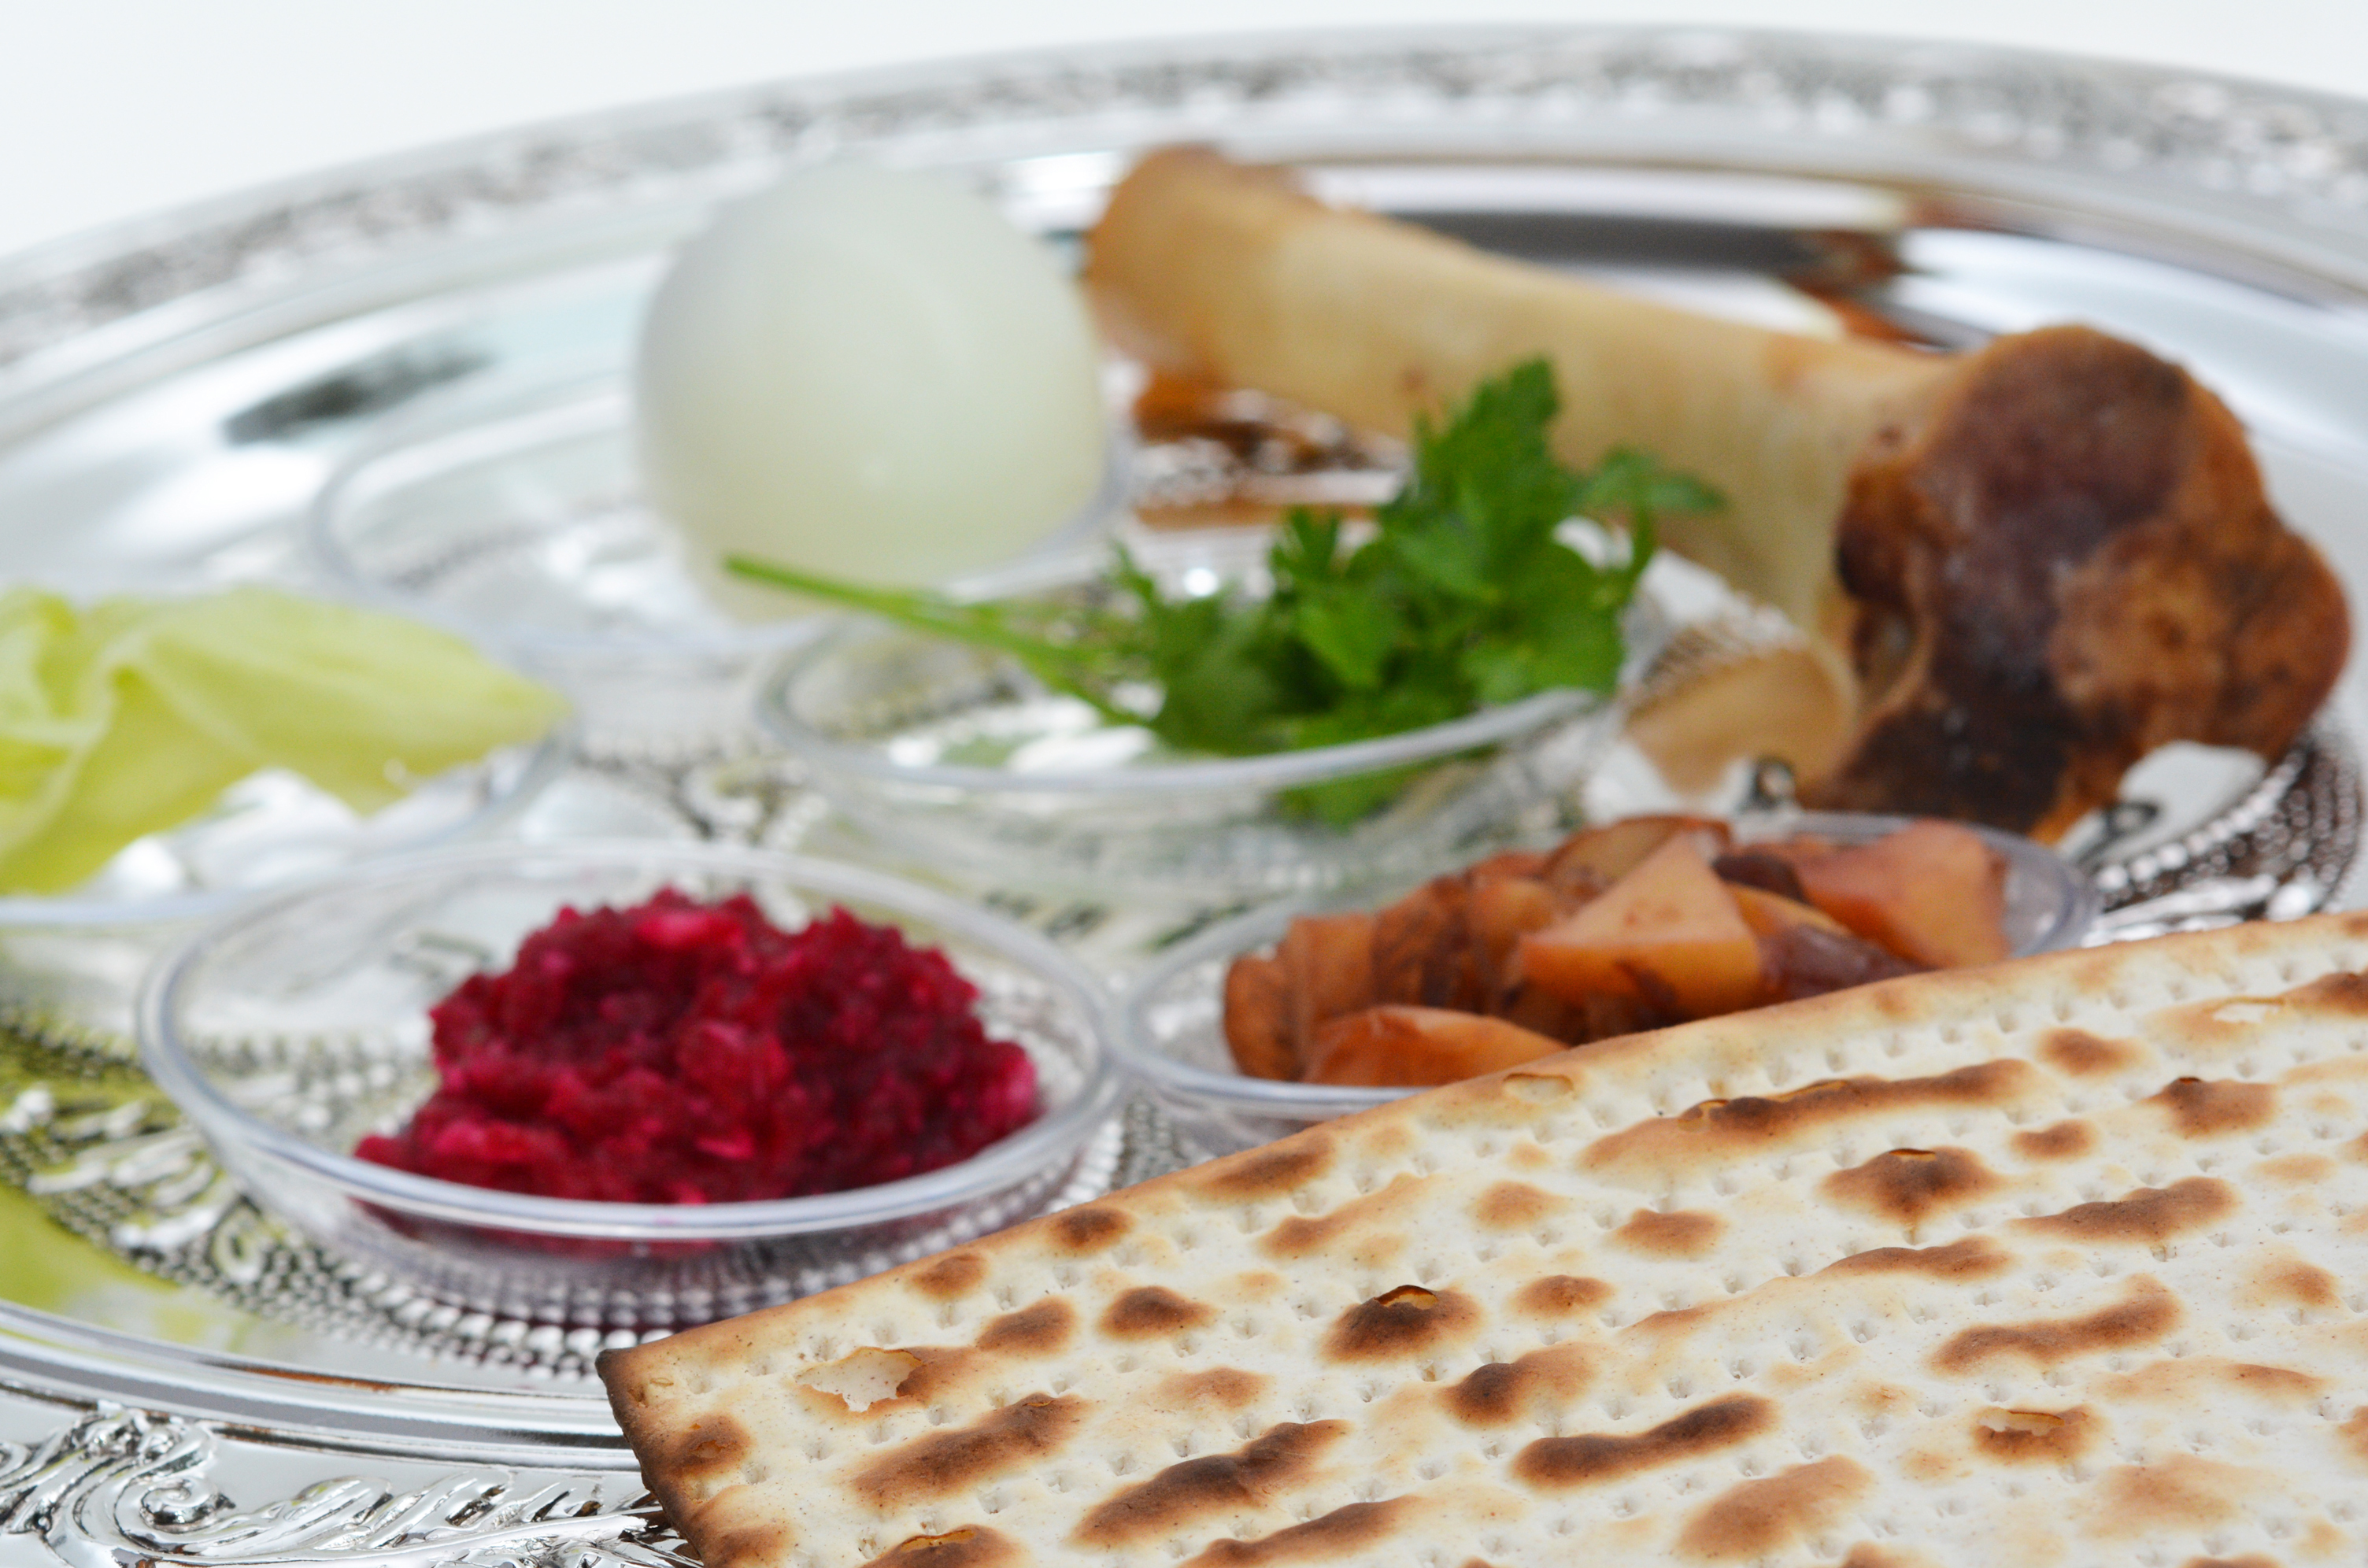 A closeup of a Seder plate with Matzah, lamb bone, and other items